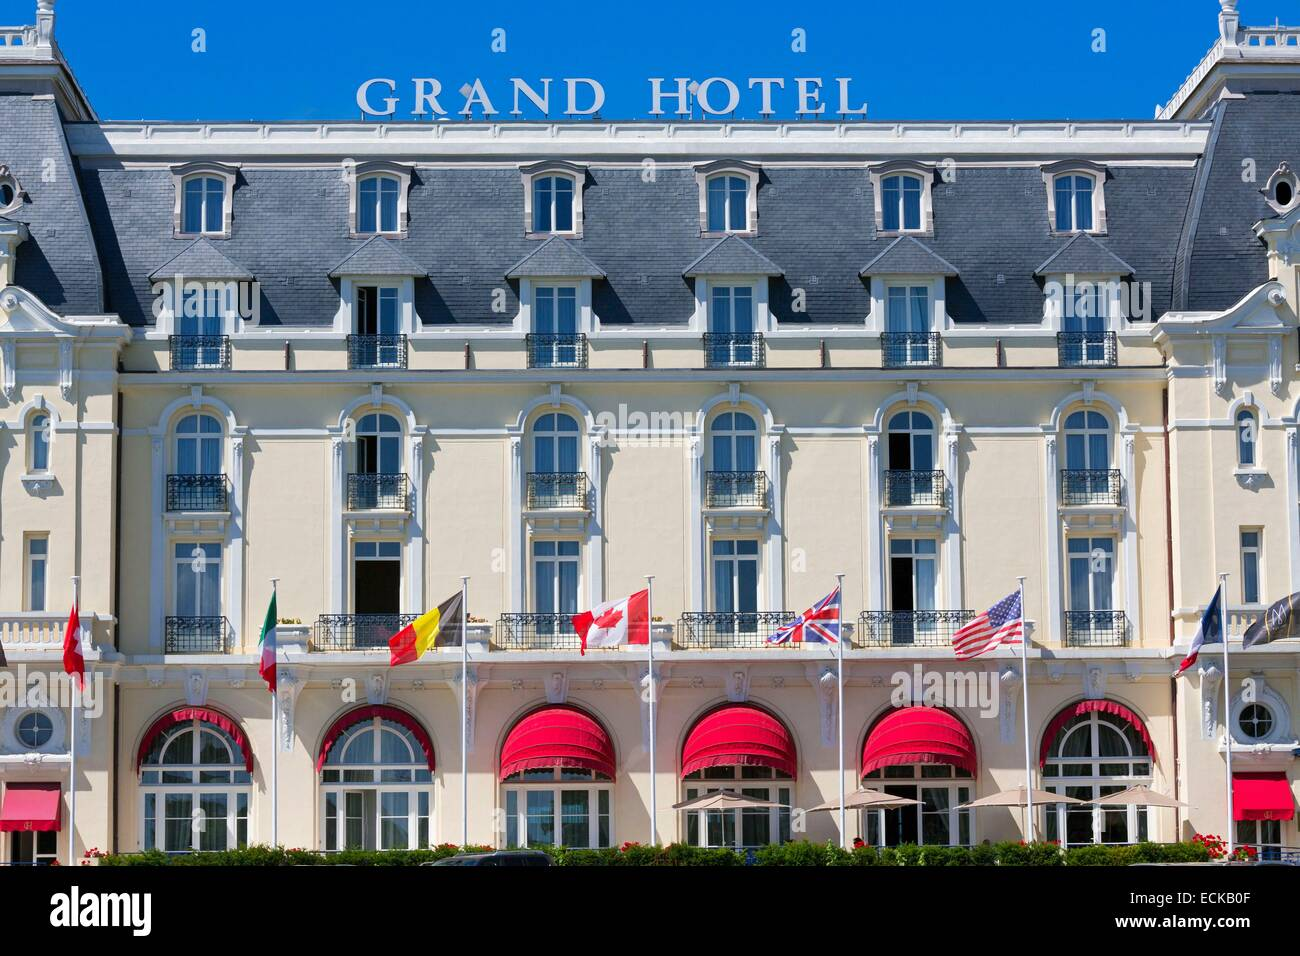 France, Calvados, Cabourg, the Grand Hotel - Stock Image